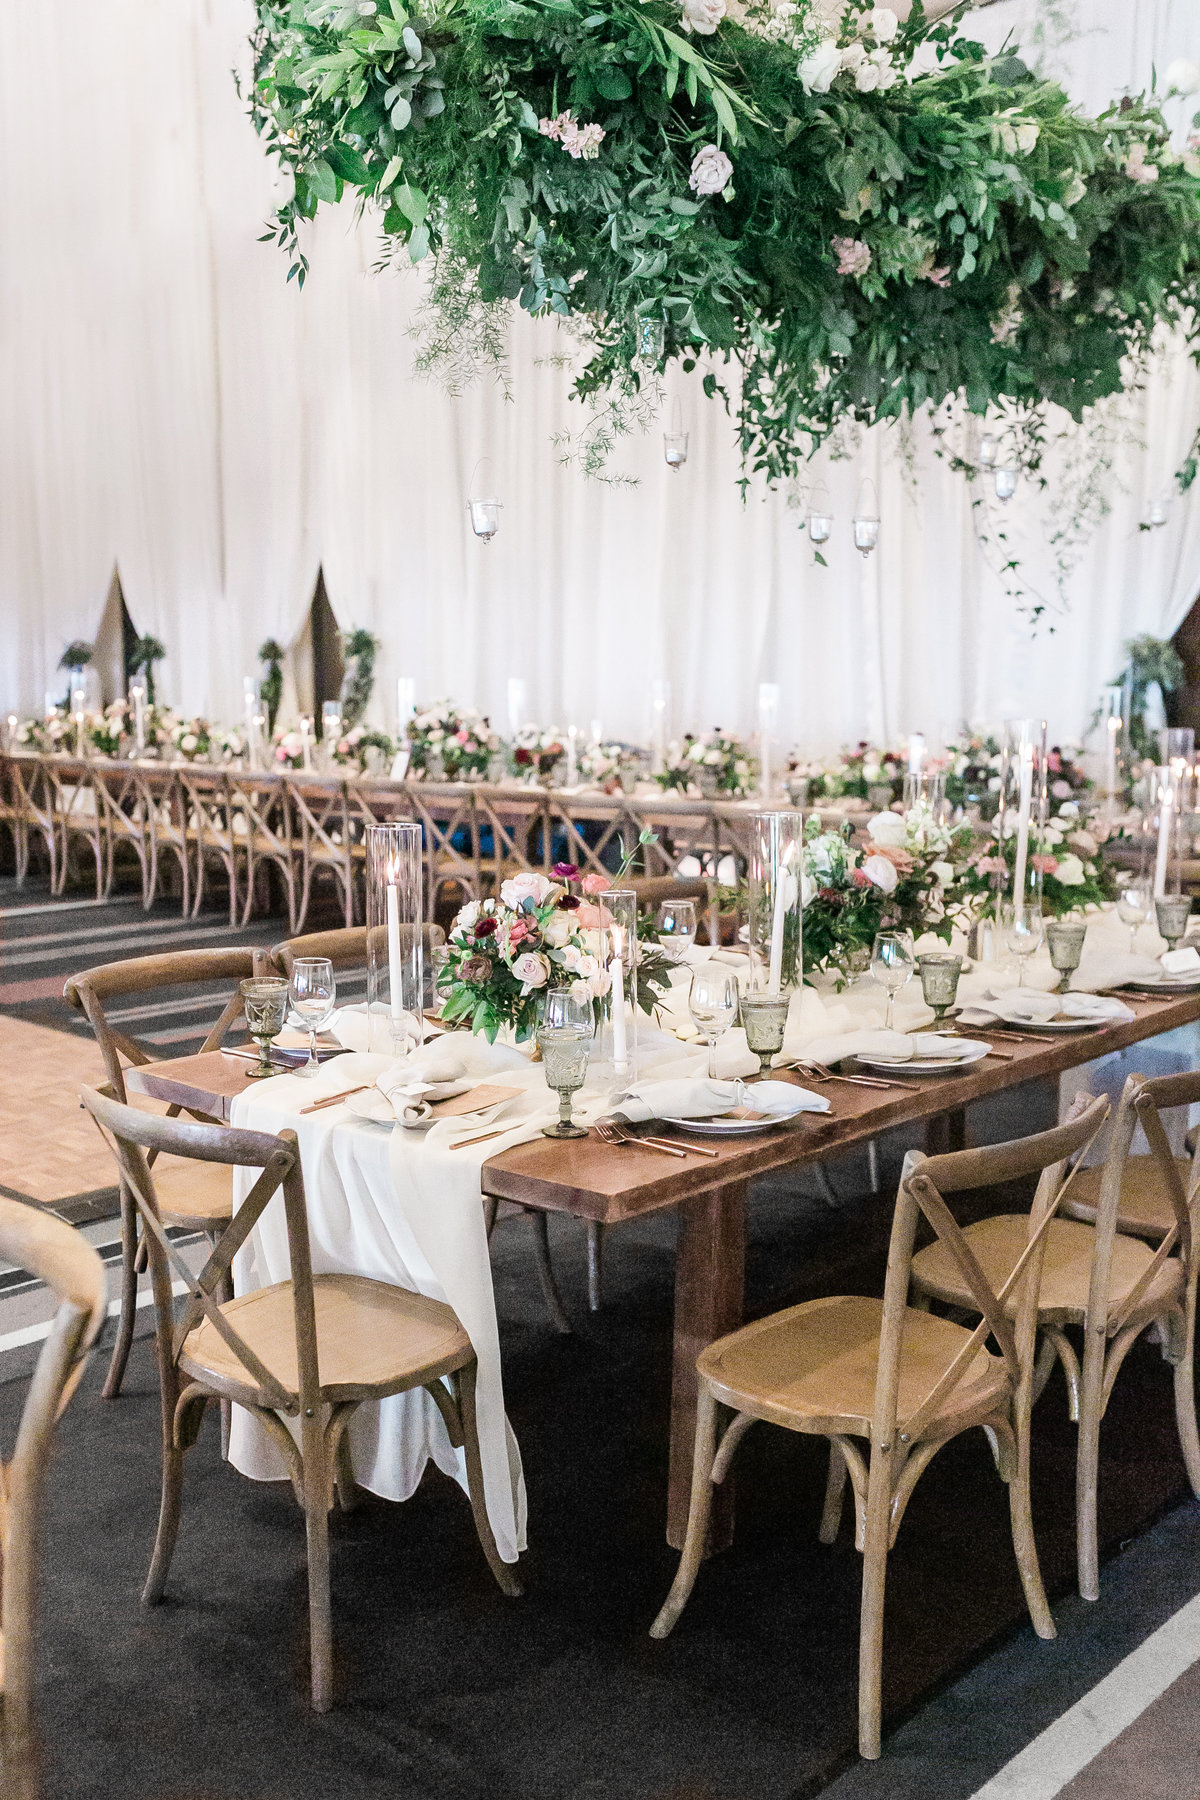 Hyatt Regency Lake Tahoe wedding in ballroom with rustic wood tables and chairs with hanging floral chandeliers